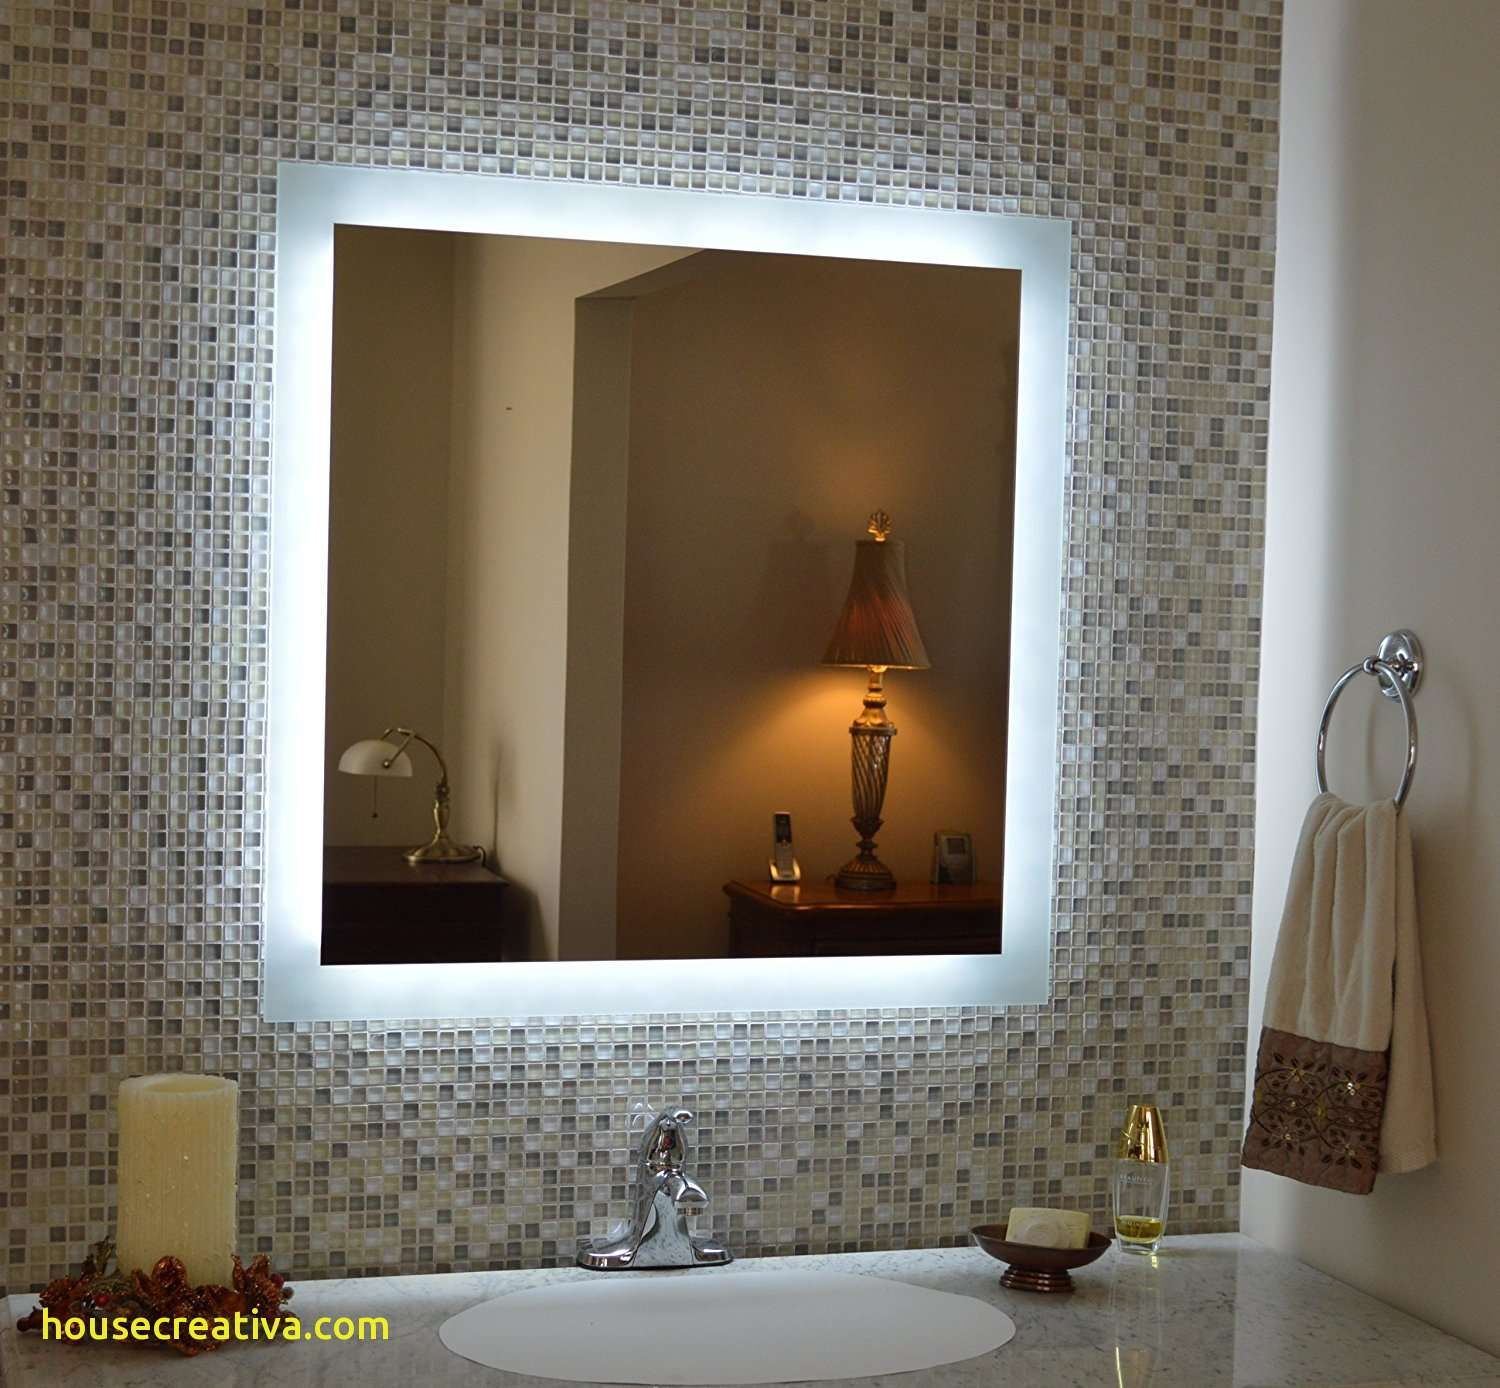 Awesome Led Lights Behind Bathroom Mirror Homedecoration Homedecorations Homedecoratio Diy Vanity Mirror With Lights Diy Vanity Mirror Led Mirror Bathroom